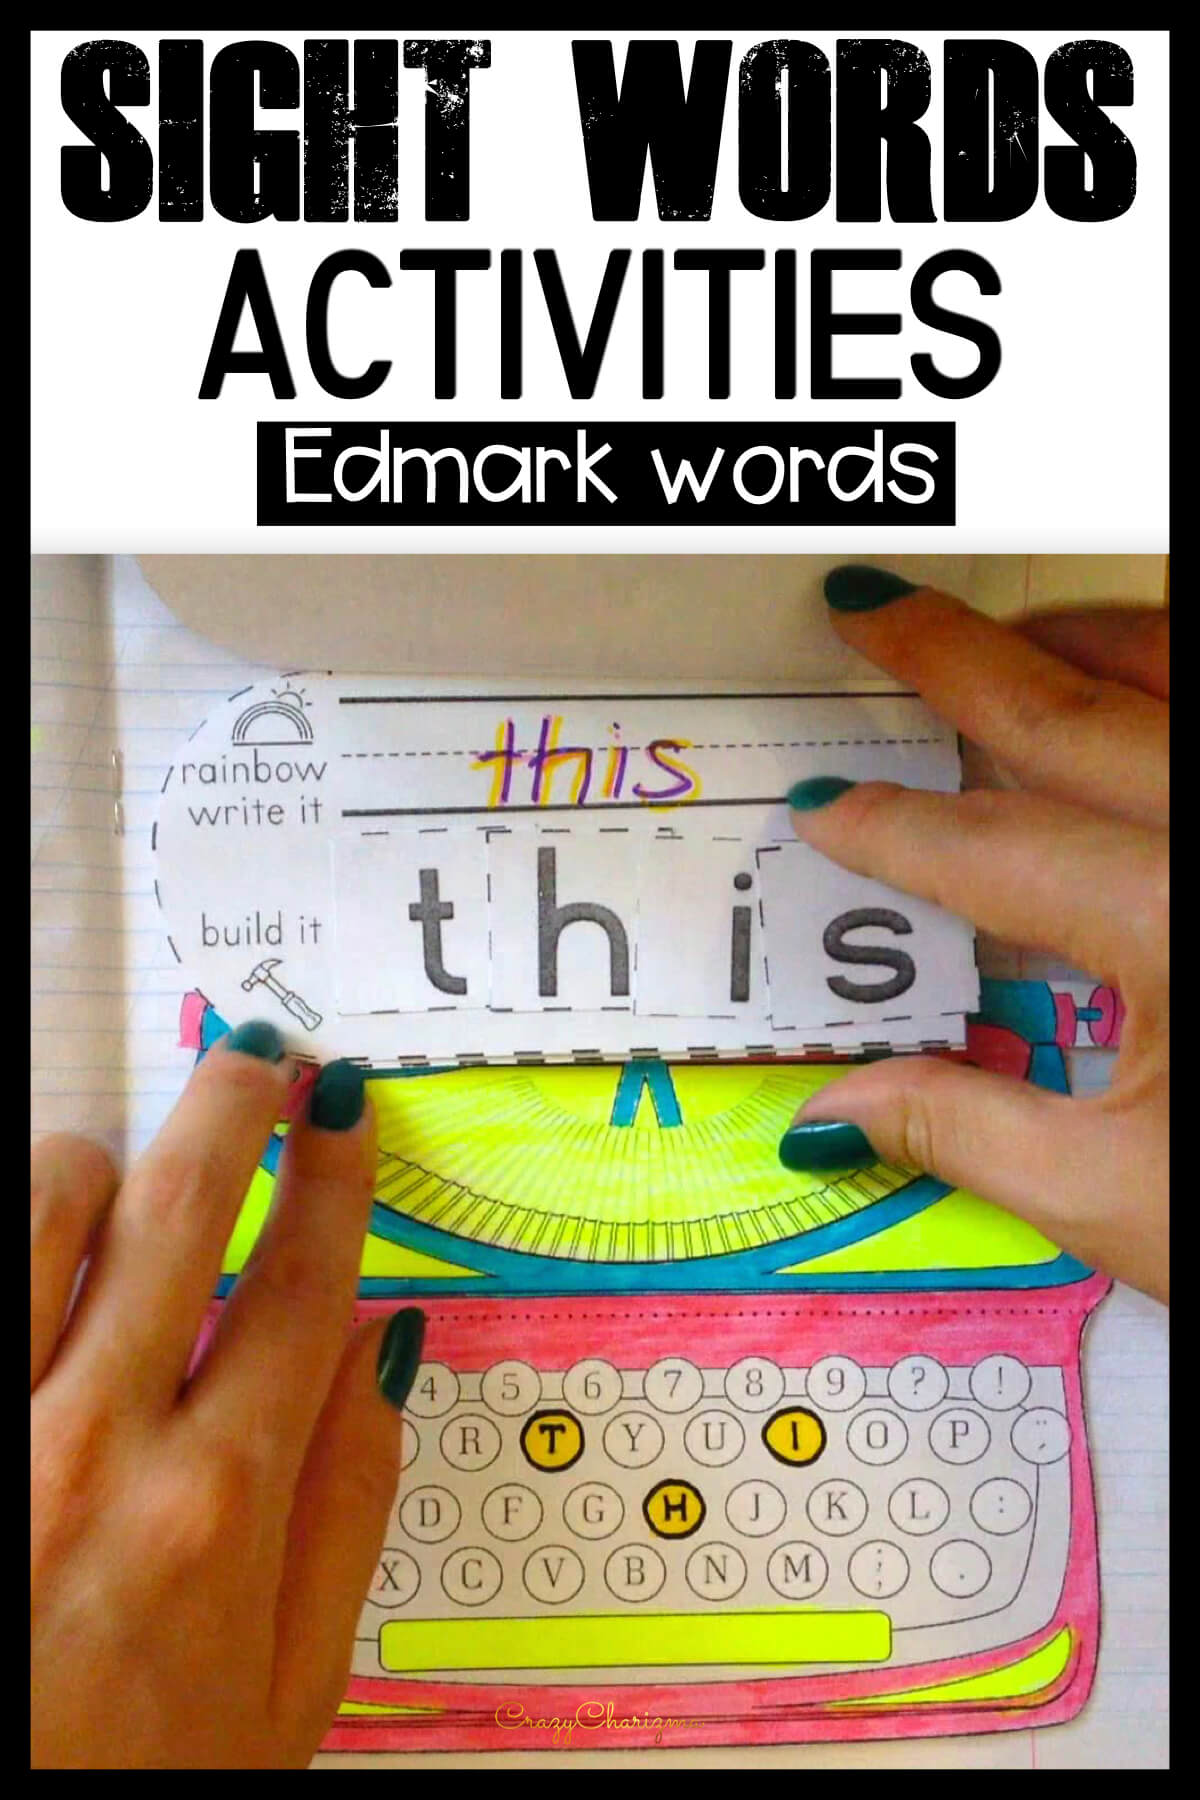 These activities for kids provide engaging, hands-on ways to build up sight words knowledge and increase reading skills. Use the packet as interactive notebooks or no-prep worksheets and master high frequency words.